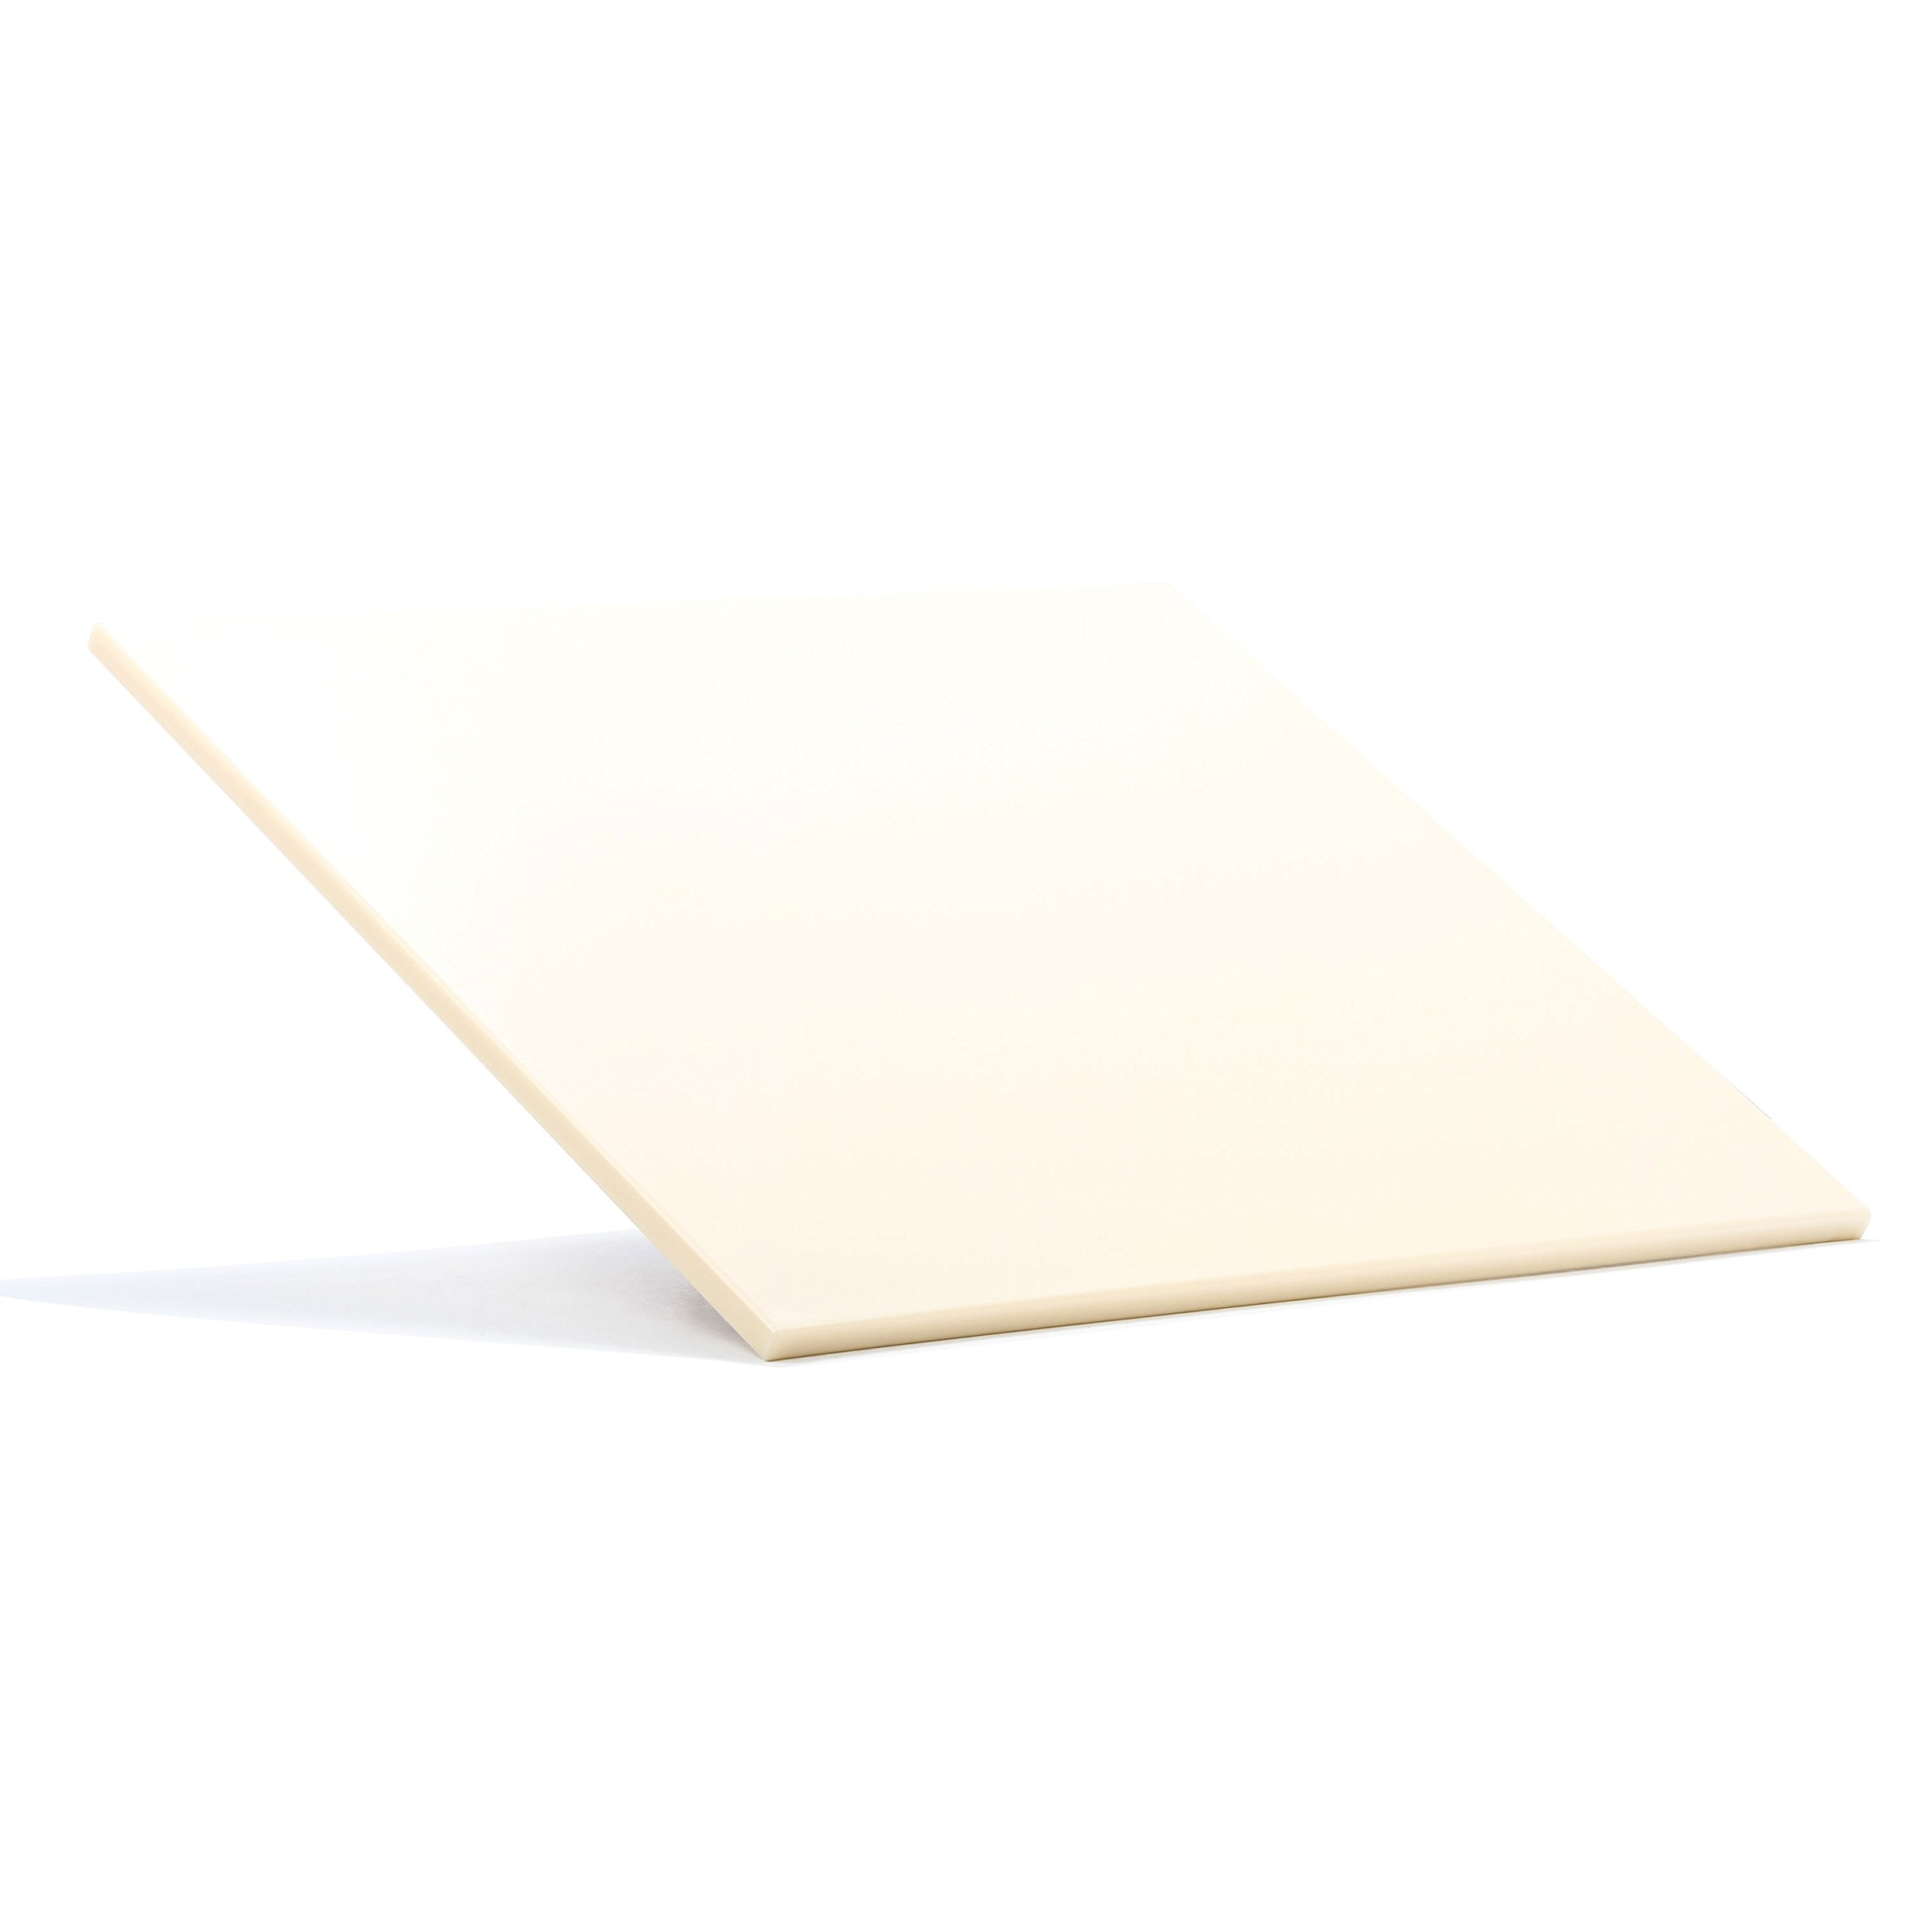 Camco Decor Mate Stove Topper and Cutting Board - Eliminates RV and Camper Stove Top Rattling |Can be Used as a Serving Tray - Almond (43709)